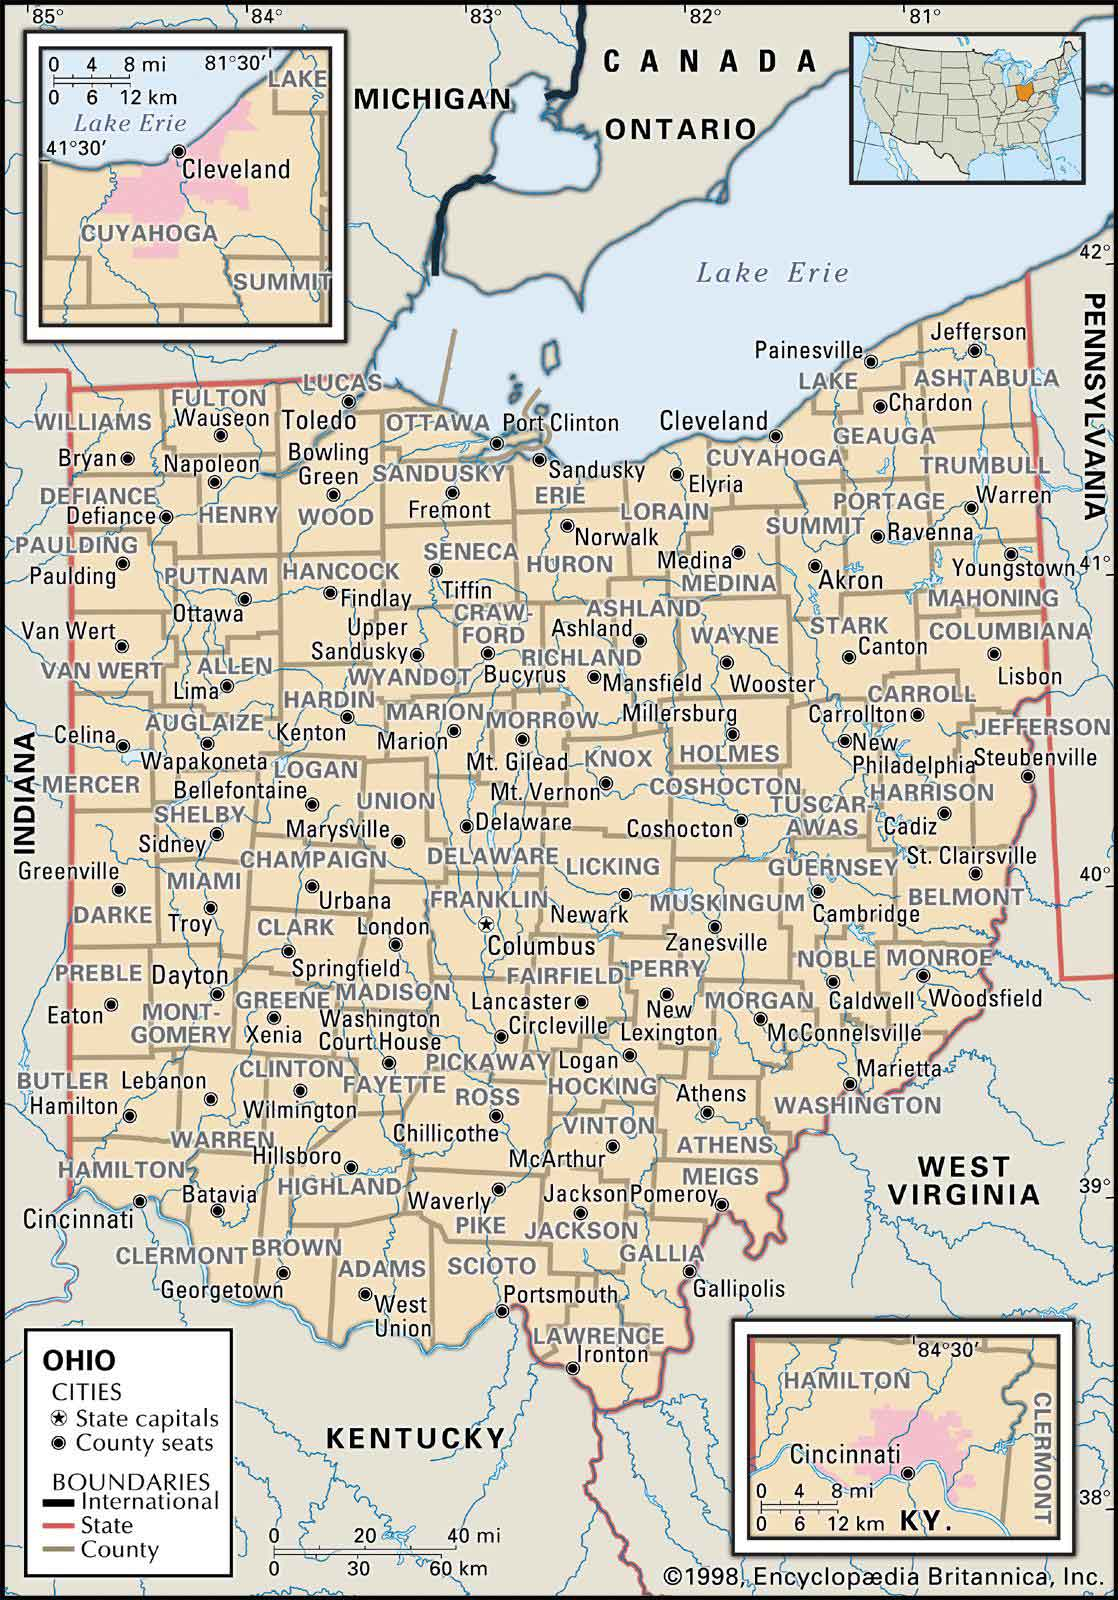 Old Historical City, County and State Maps of Ohio on newark ohio road map, cleveland ohio road map, dublin ohio road map, north canton ohio road map, dayton ohio road map, marietta ohio road map, ashtabula county township map, ashland ohio road map, tuscarawas county ohio fair, marion ohio road map, ashtabula county road map, youngstown ohio road map, springfield ohio road map, lancaster ohio road map, hudson ohio road map, toledo ohio road map, dover ohio road map, lima ohio road map, cincinnati ohio road map, stark county ohio section map,